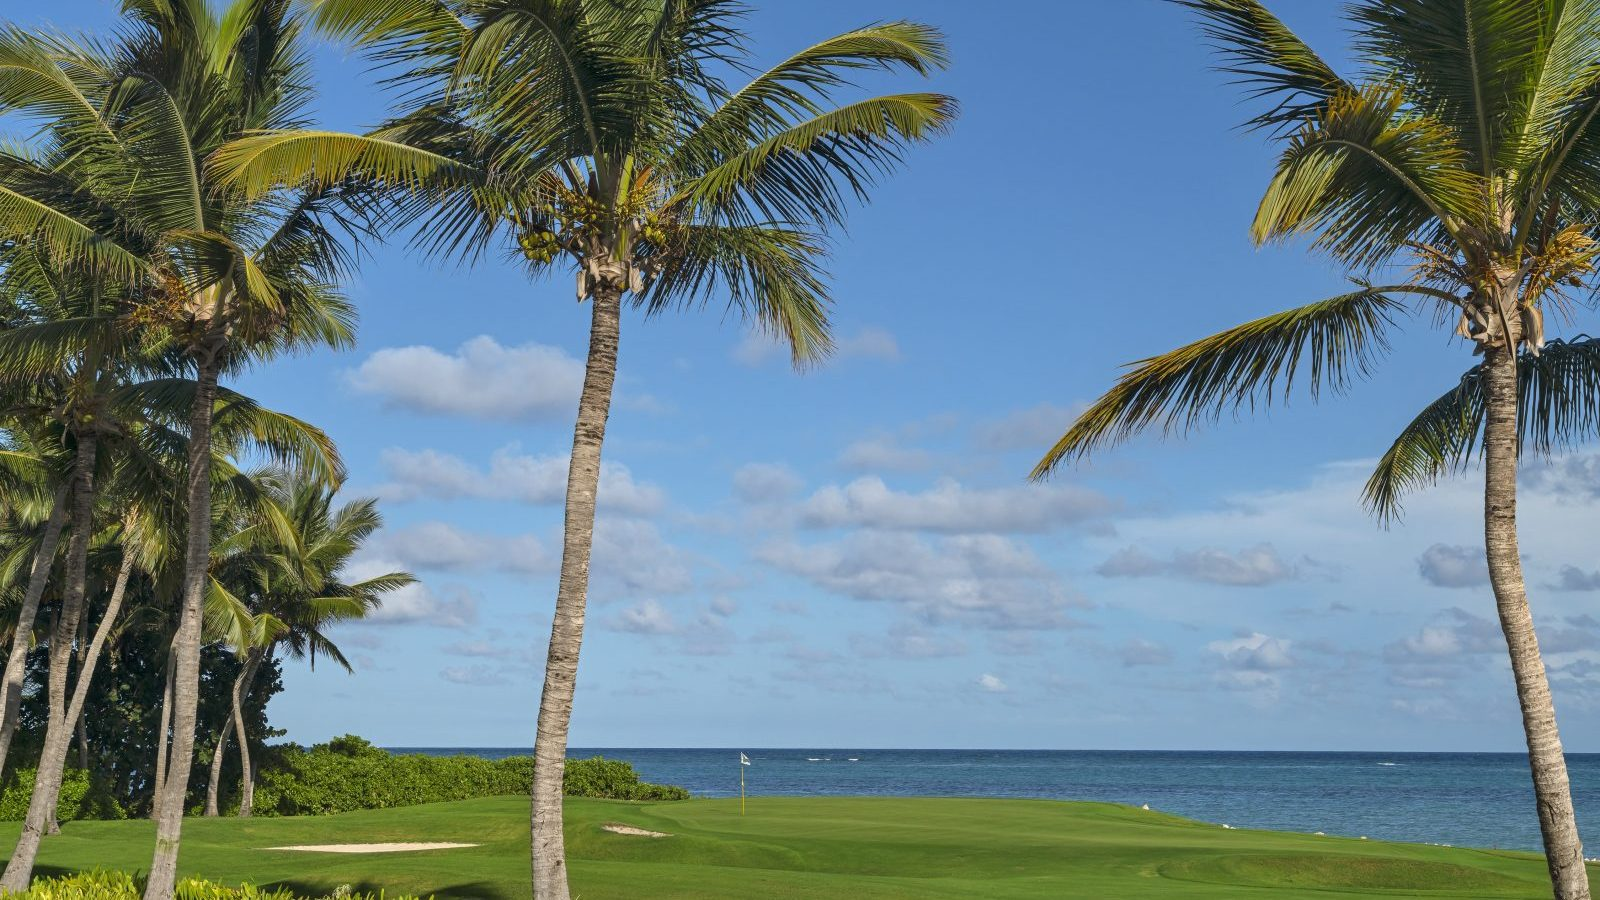 La-Cana-golf-course-Punta-Cana